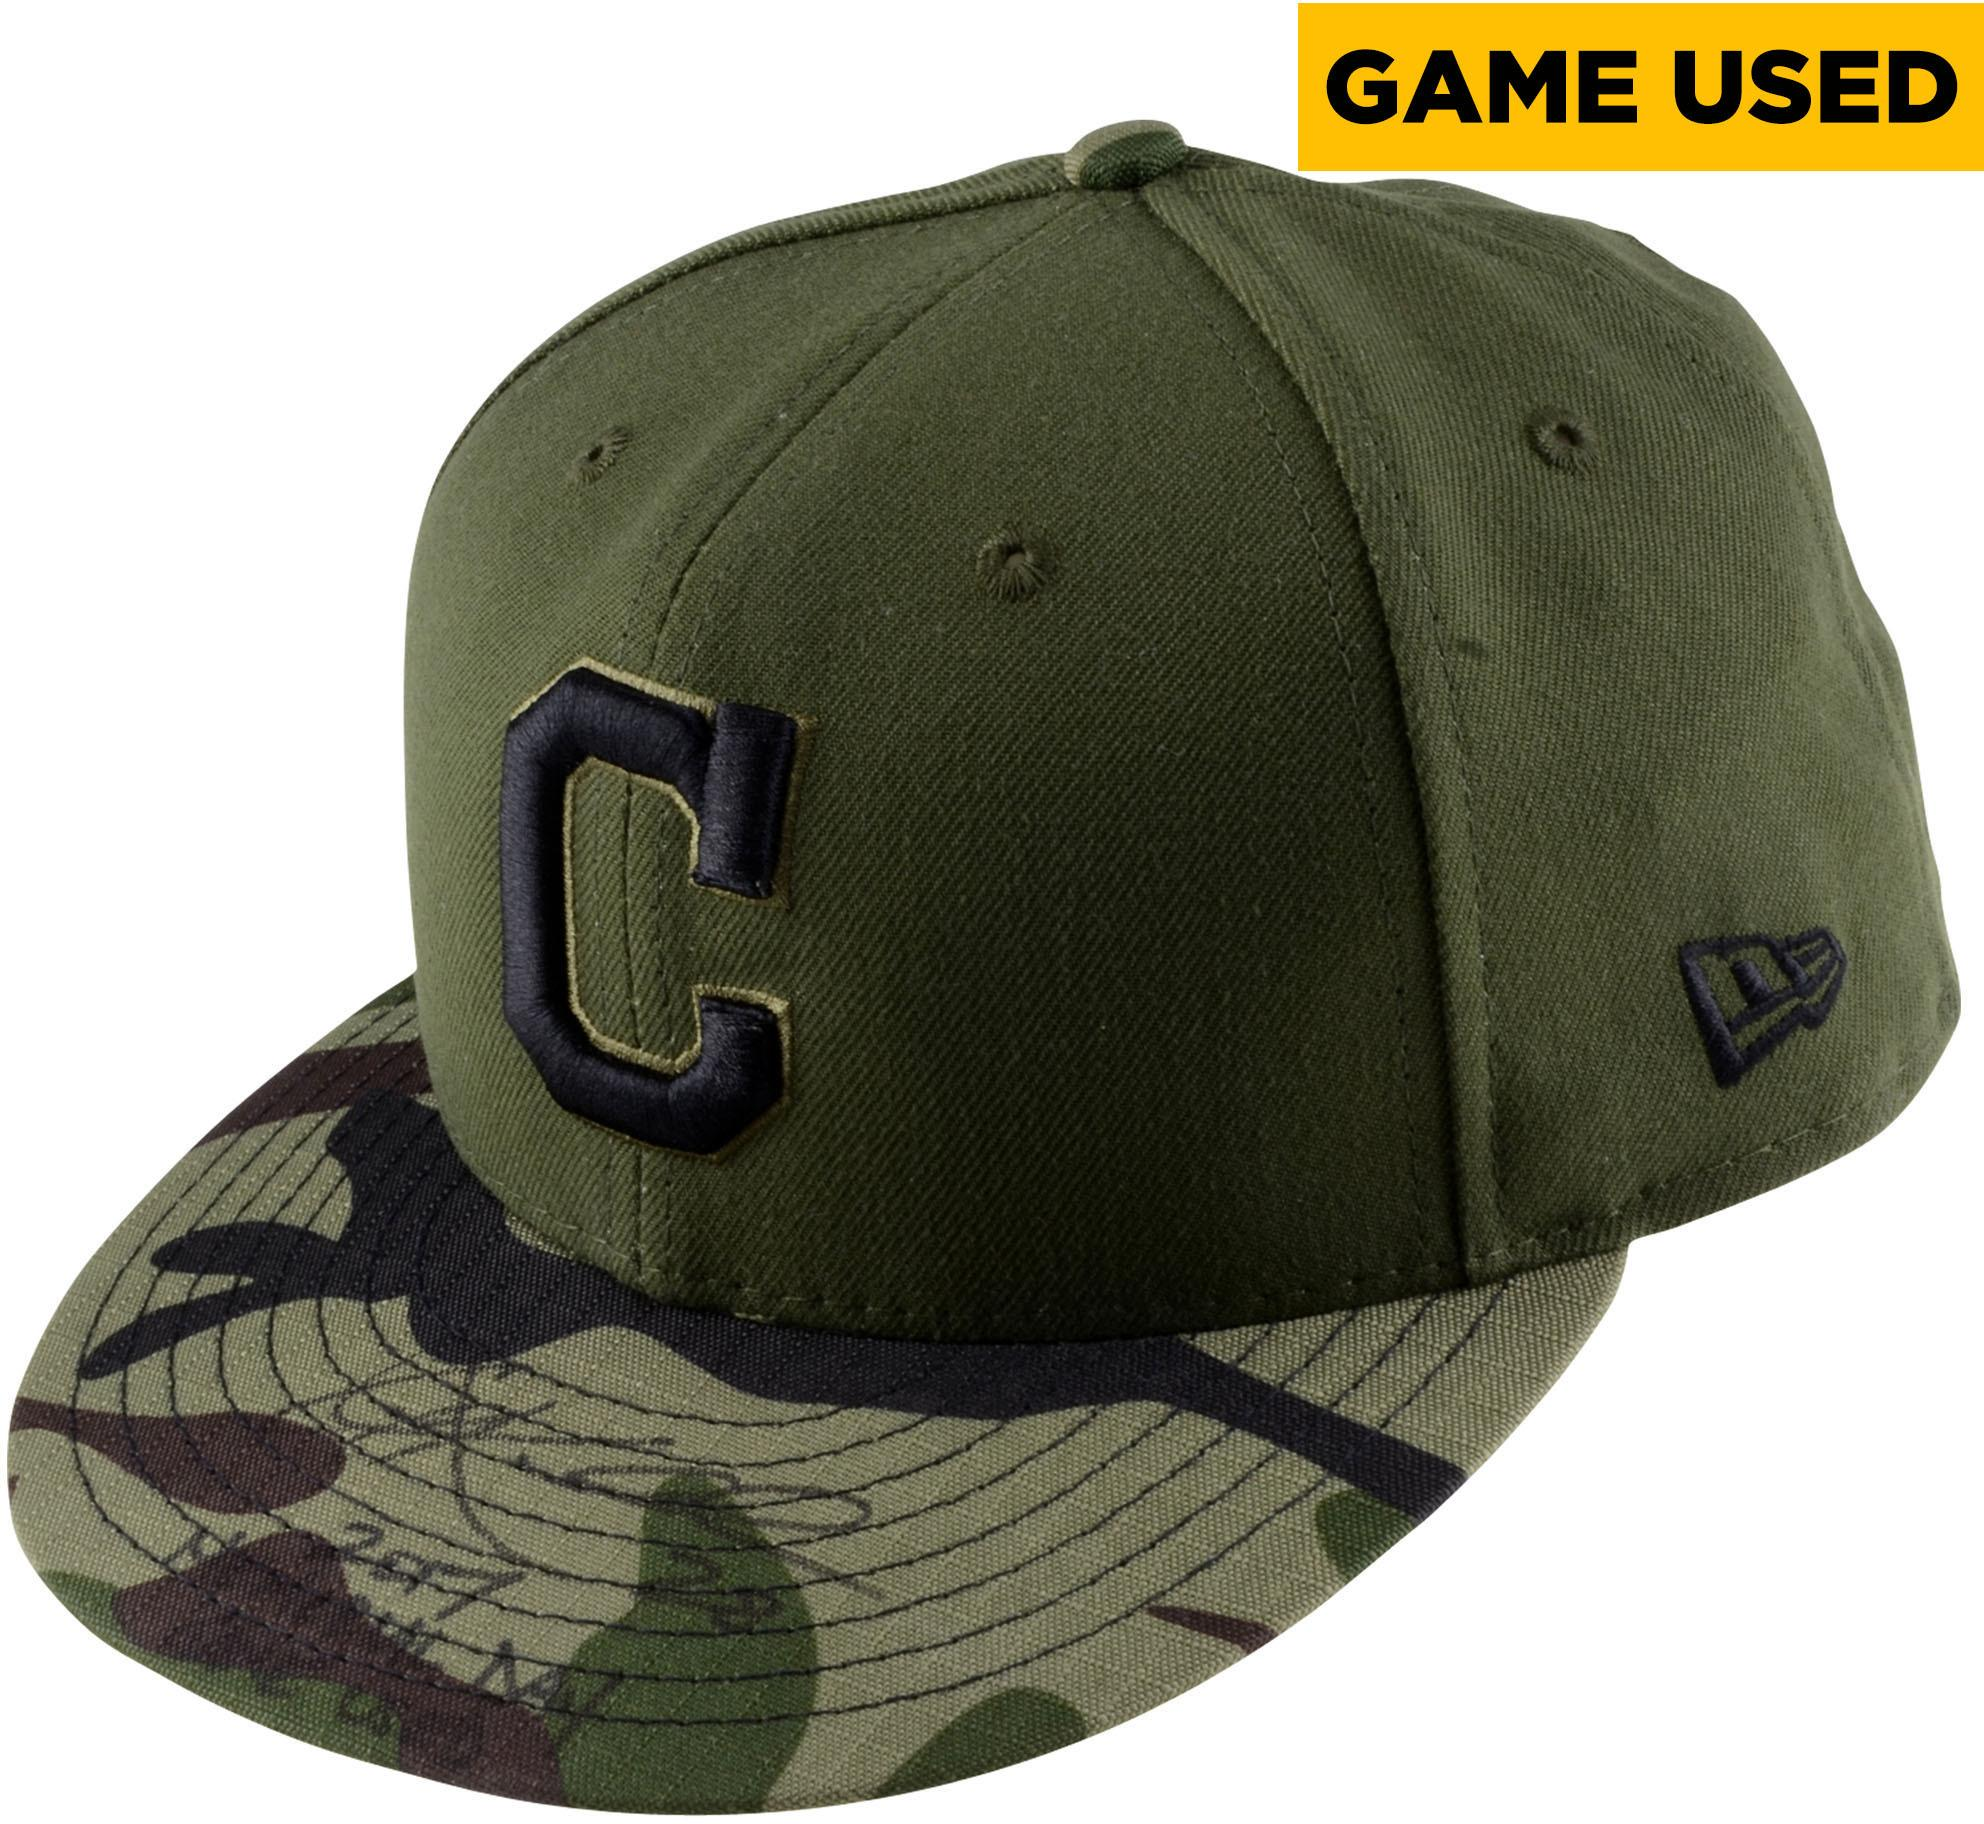 "Corey Kluber Cleveland Indians Autographed Game-Used #28 Camouflage Cap vs. Oakland Athletics on May 29, 2017 with ""2017 Memorial Day Game Used"" Inscription - Fanatics Authentic Certified"